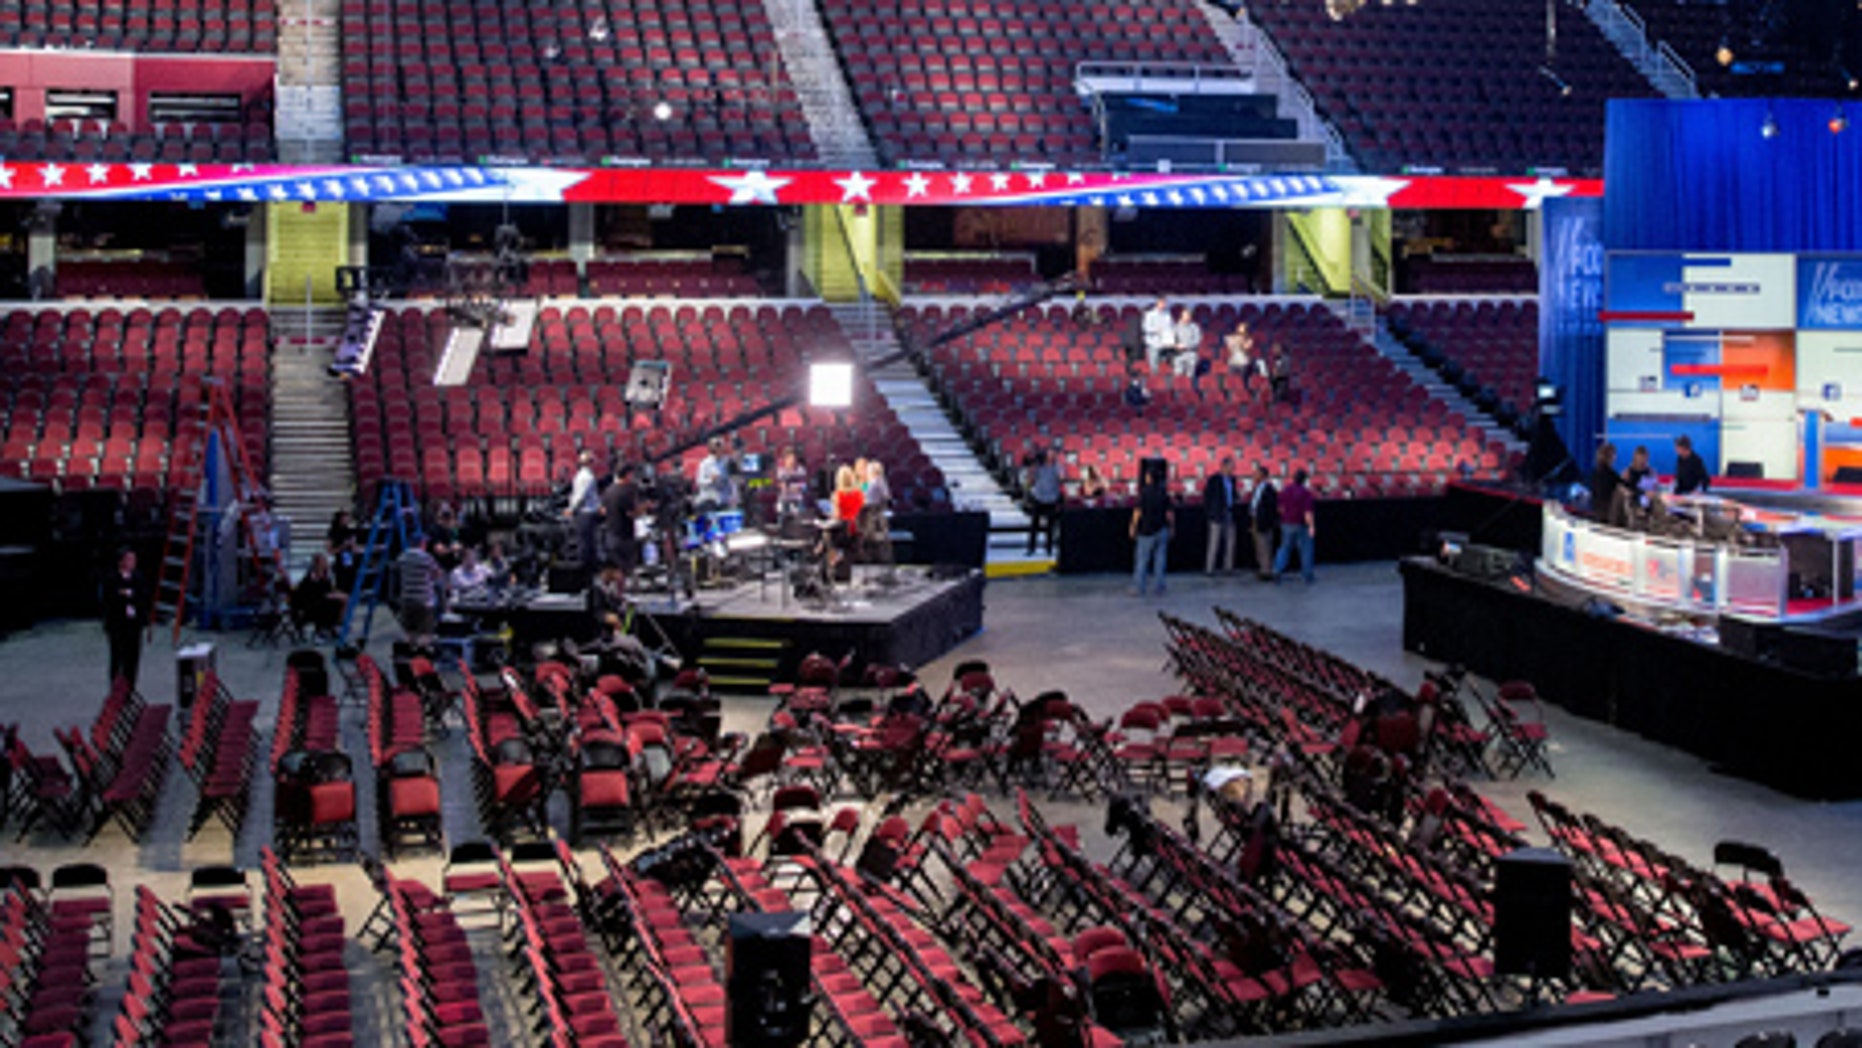 Final preparations at the Quicken Loans Arena in Cleveland, Aug. 6, 2015, for the first GOP presidential debate.